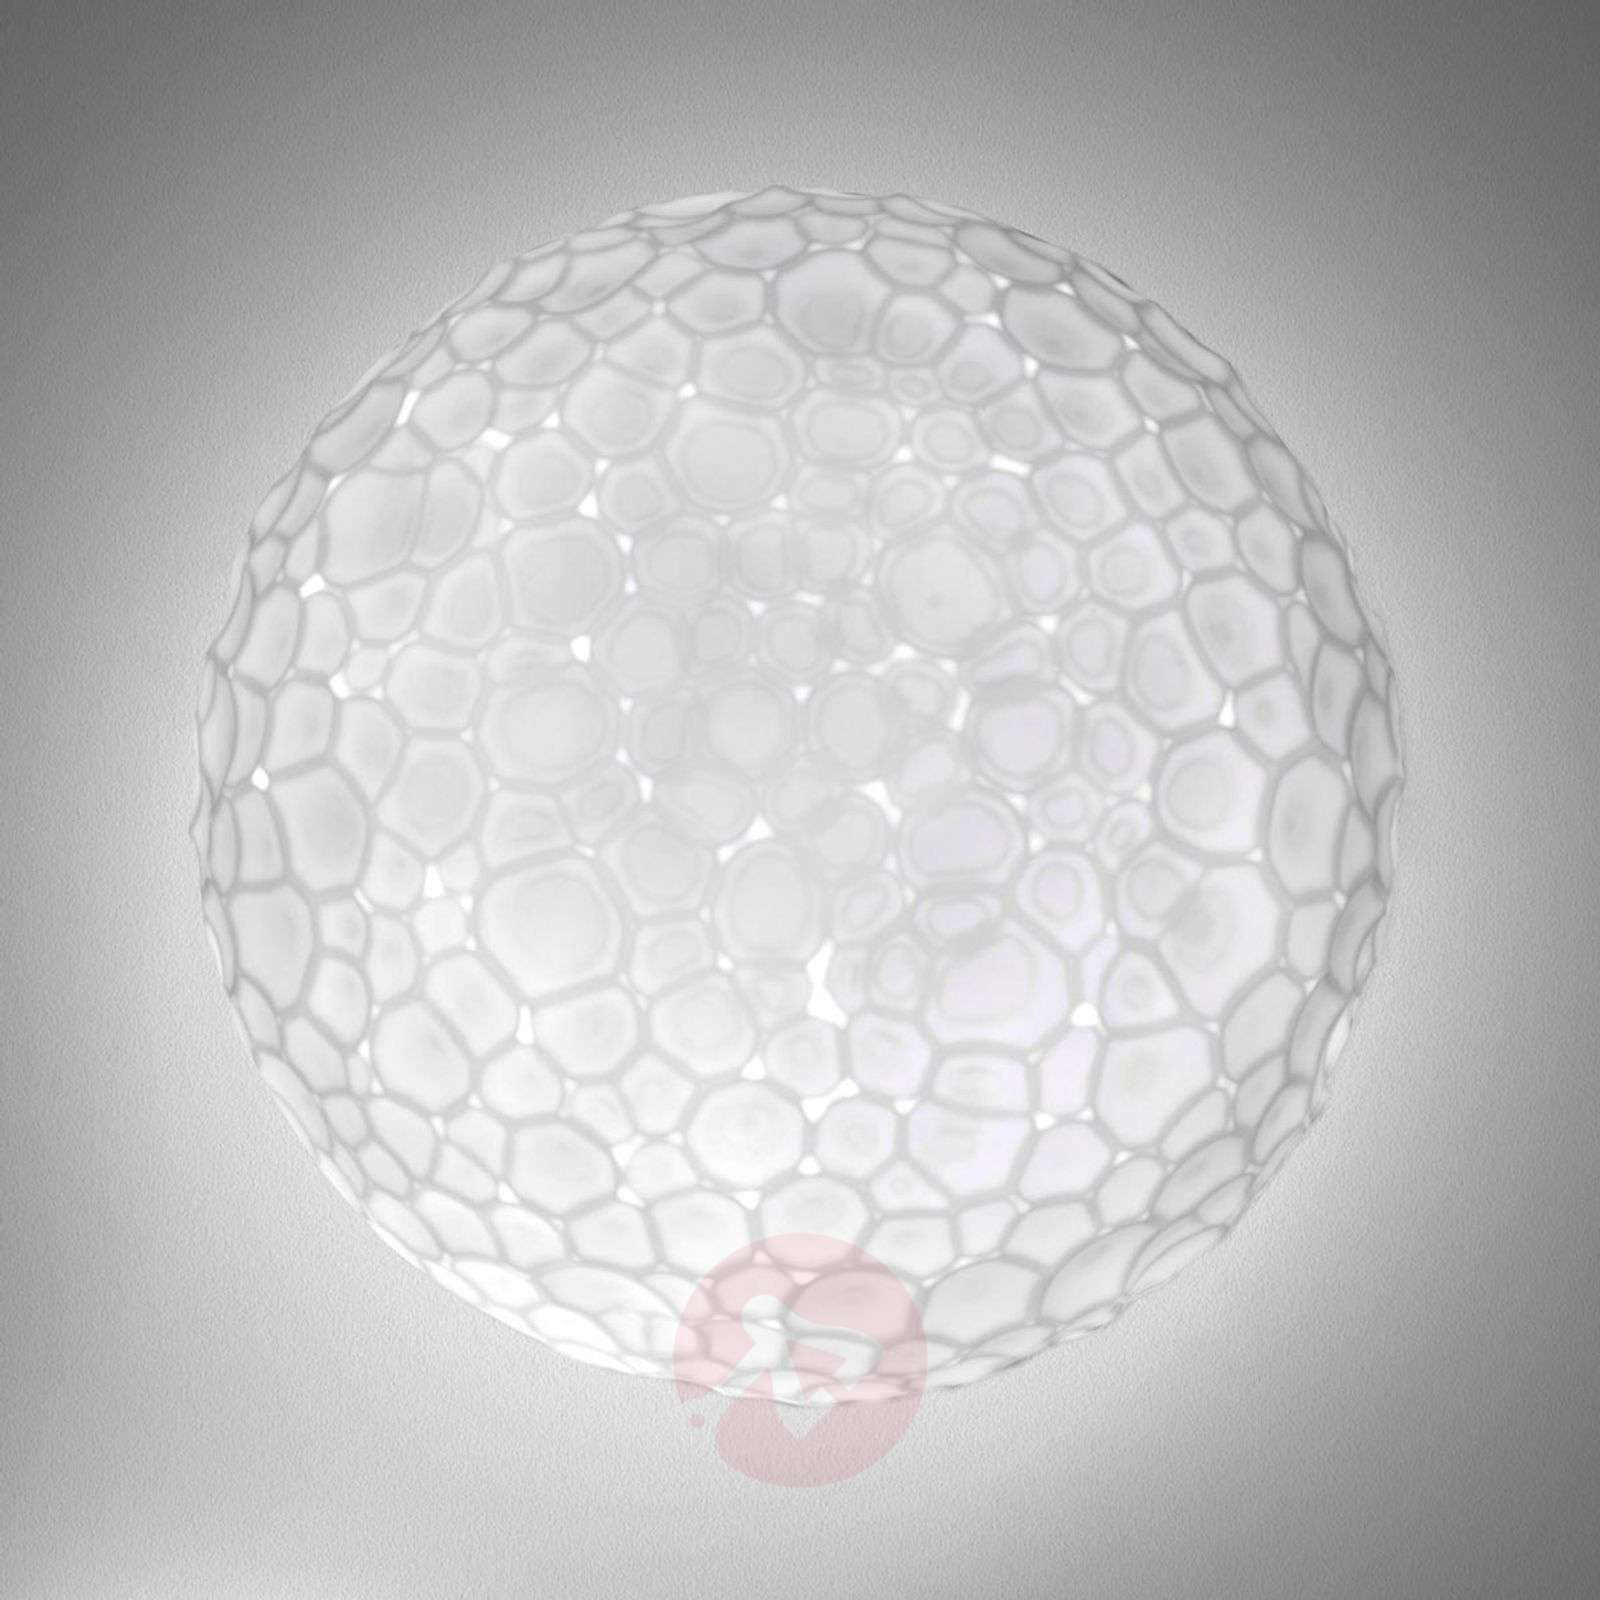 Meteorite glass wall light, 35 cm-1060039-01